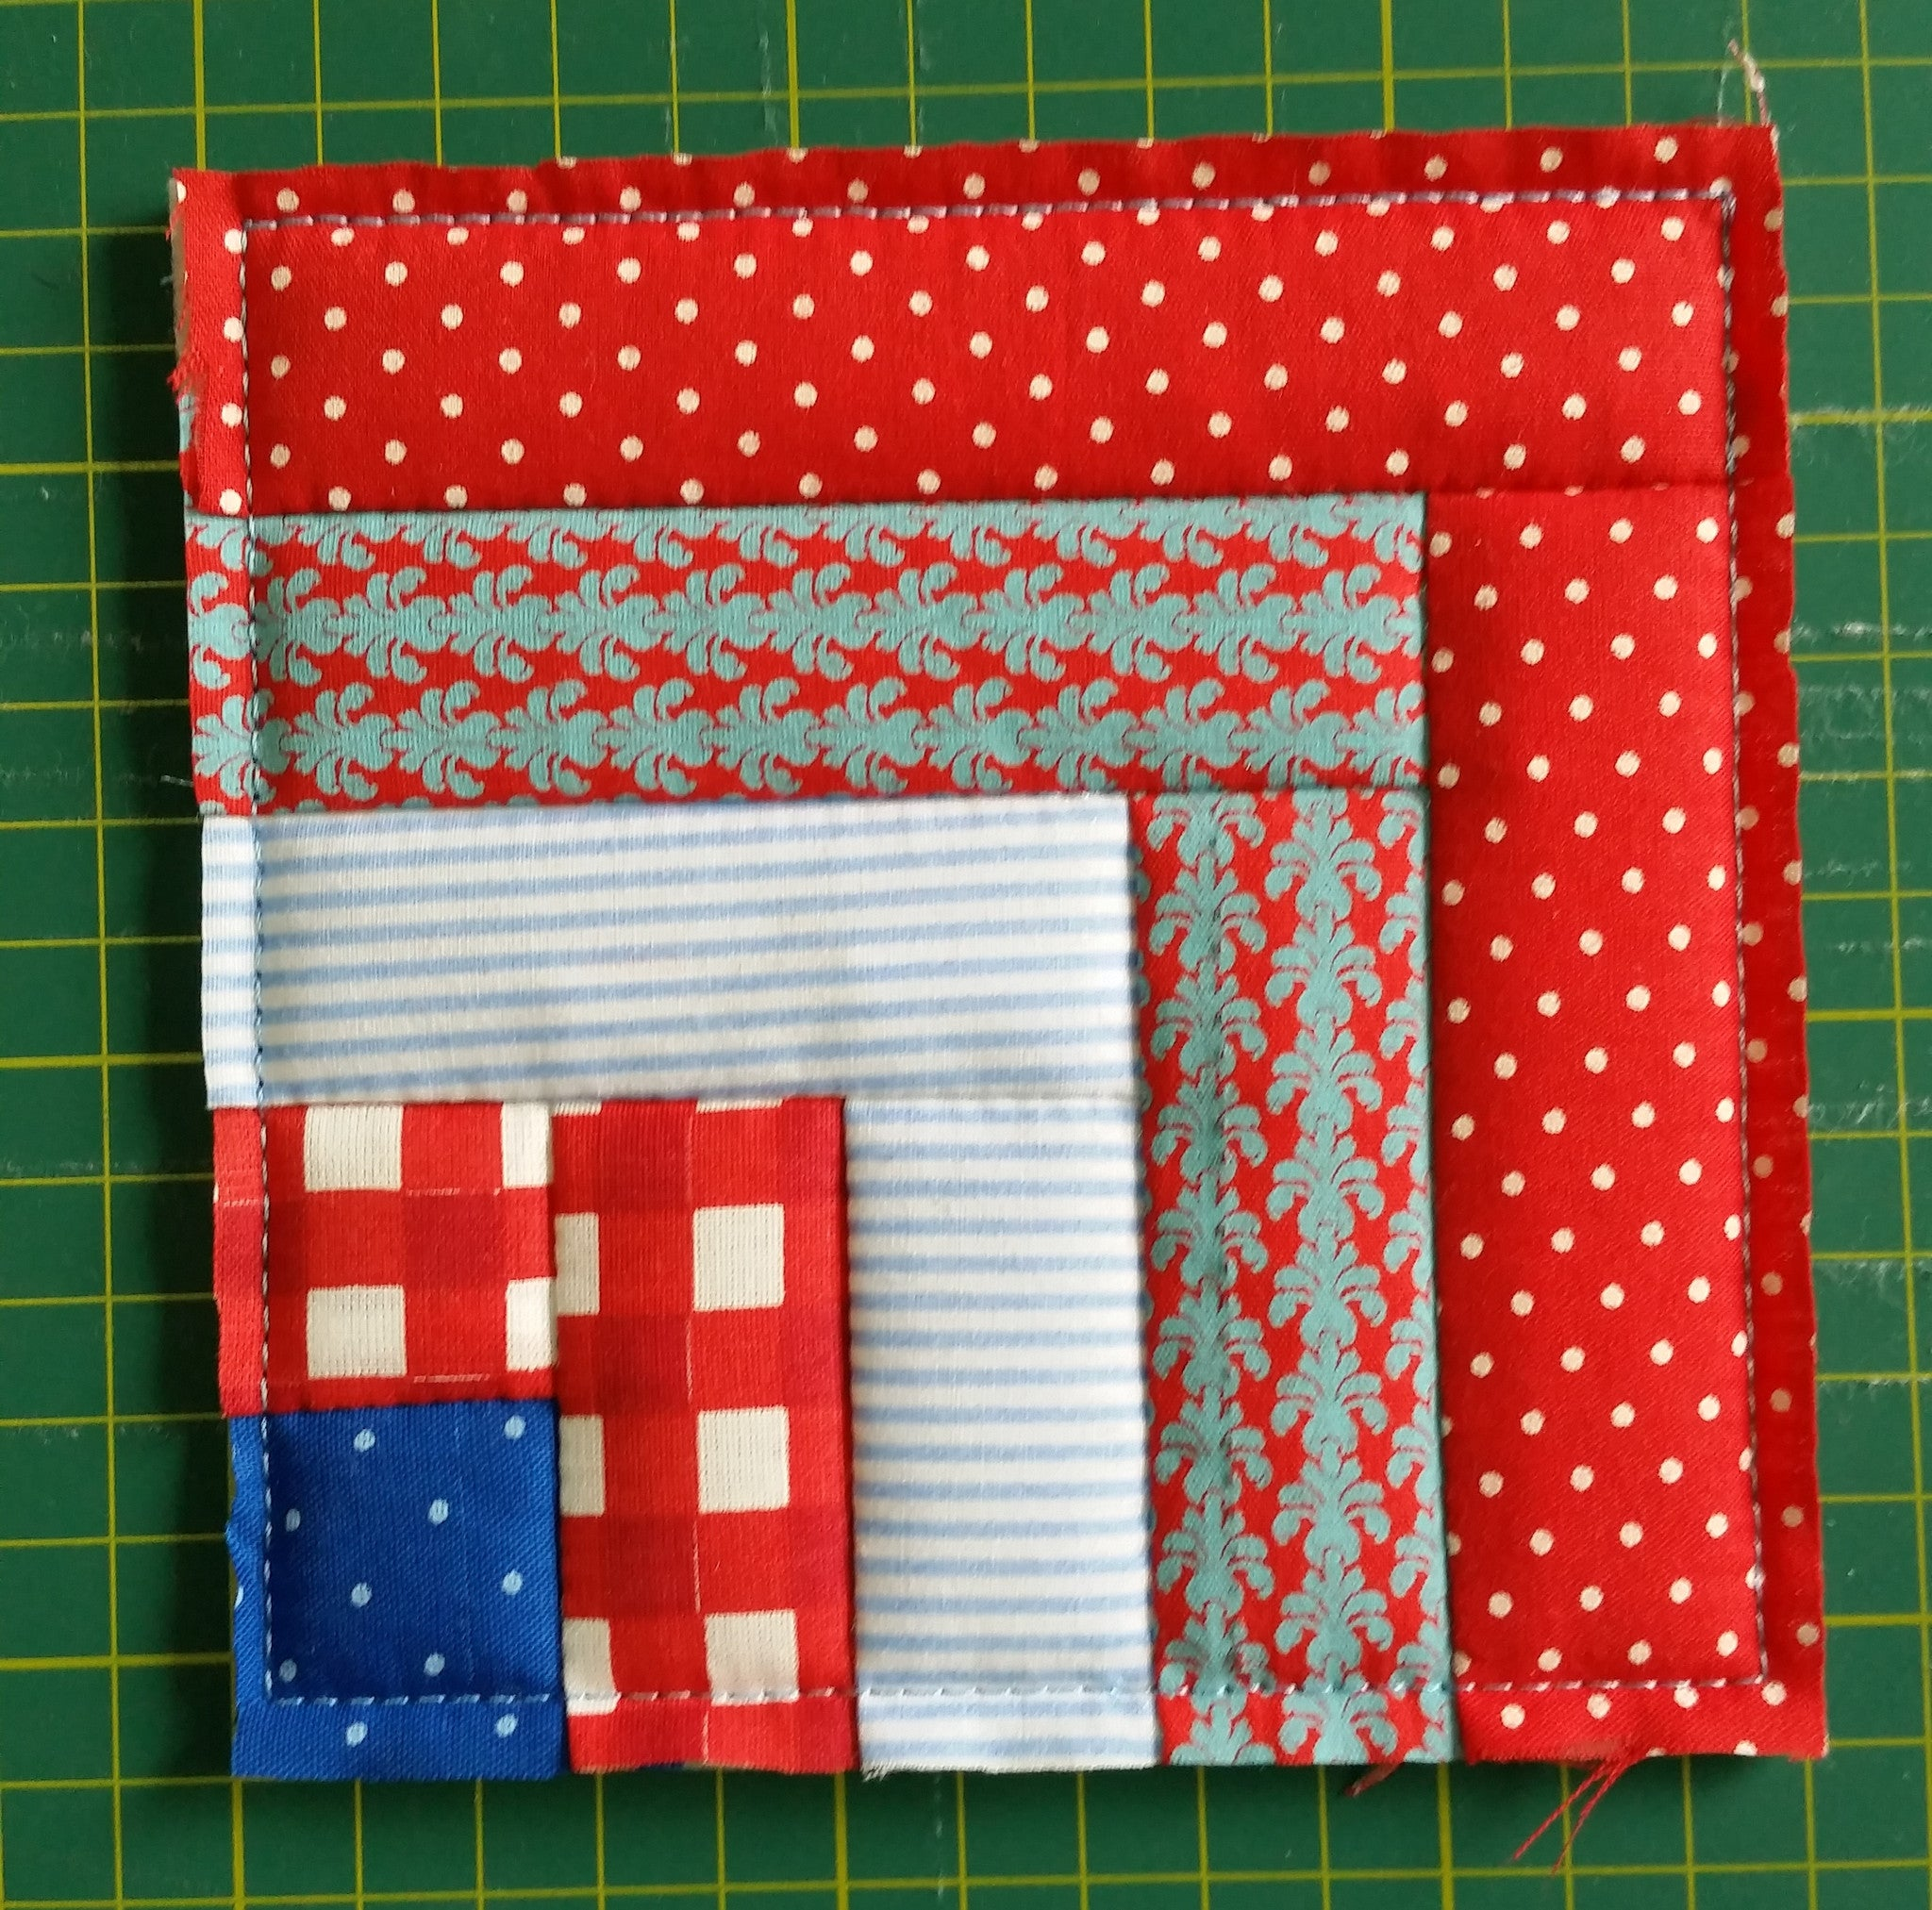 ITH QUILTING BLOCK # 11 (LOG CABIN)